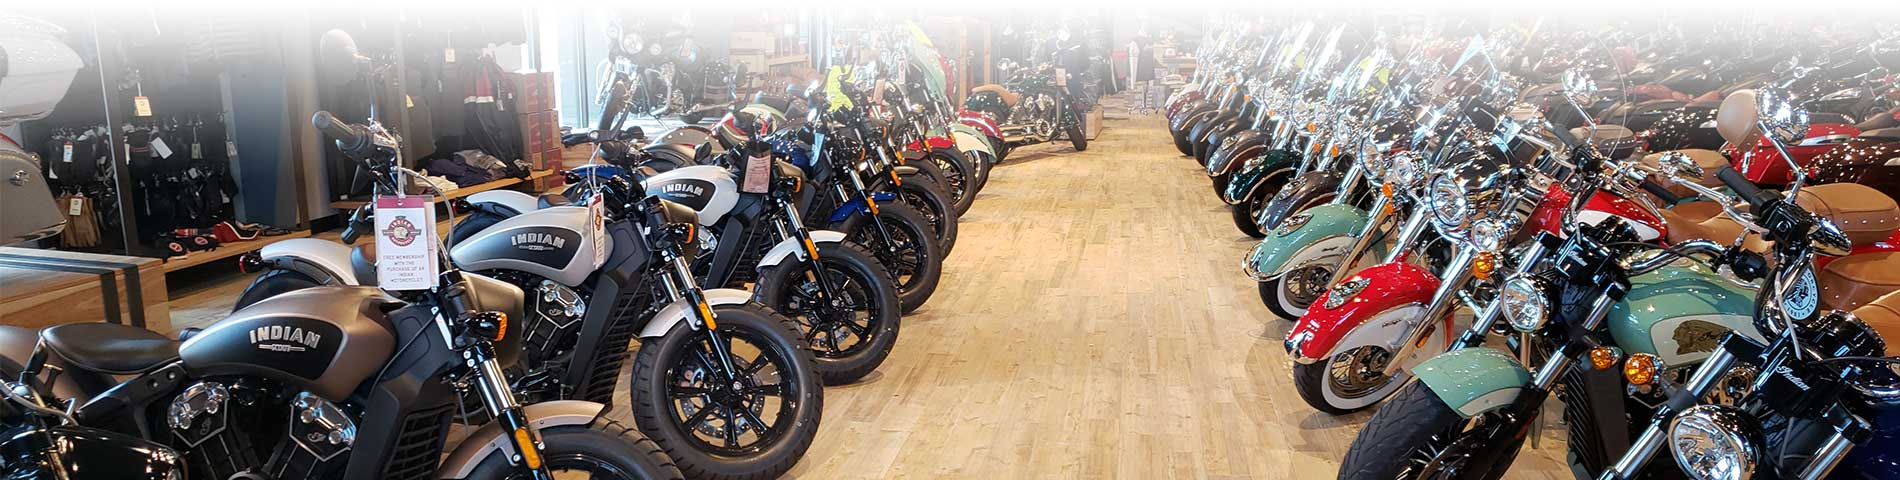 Indian Showroom at Stu's Motorcycles